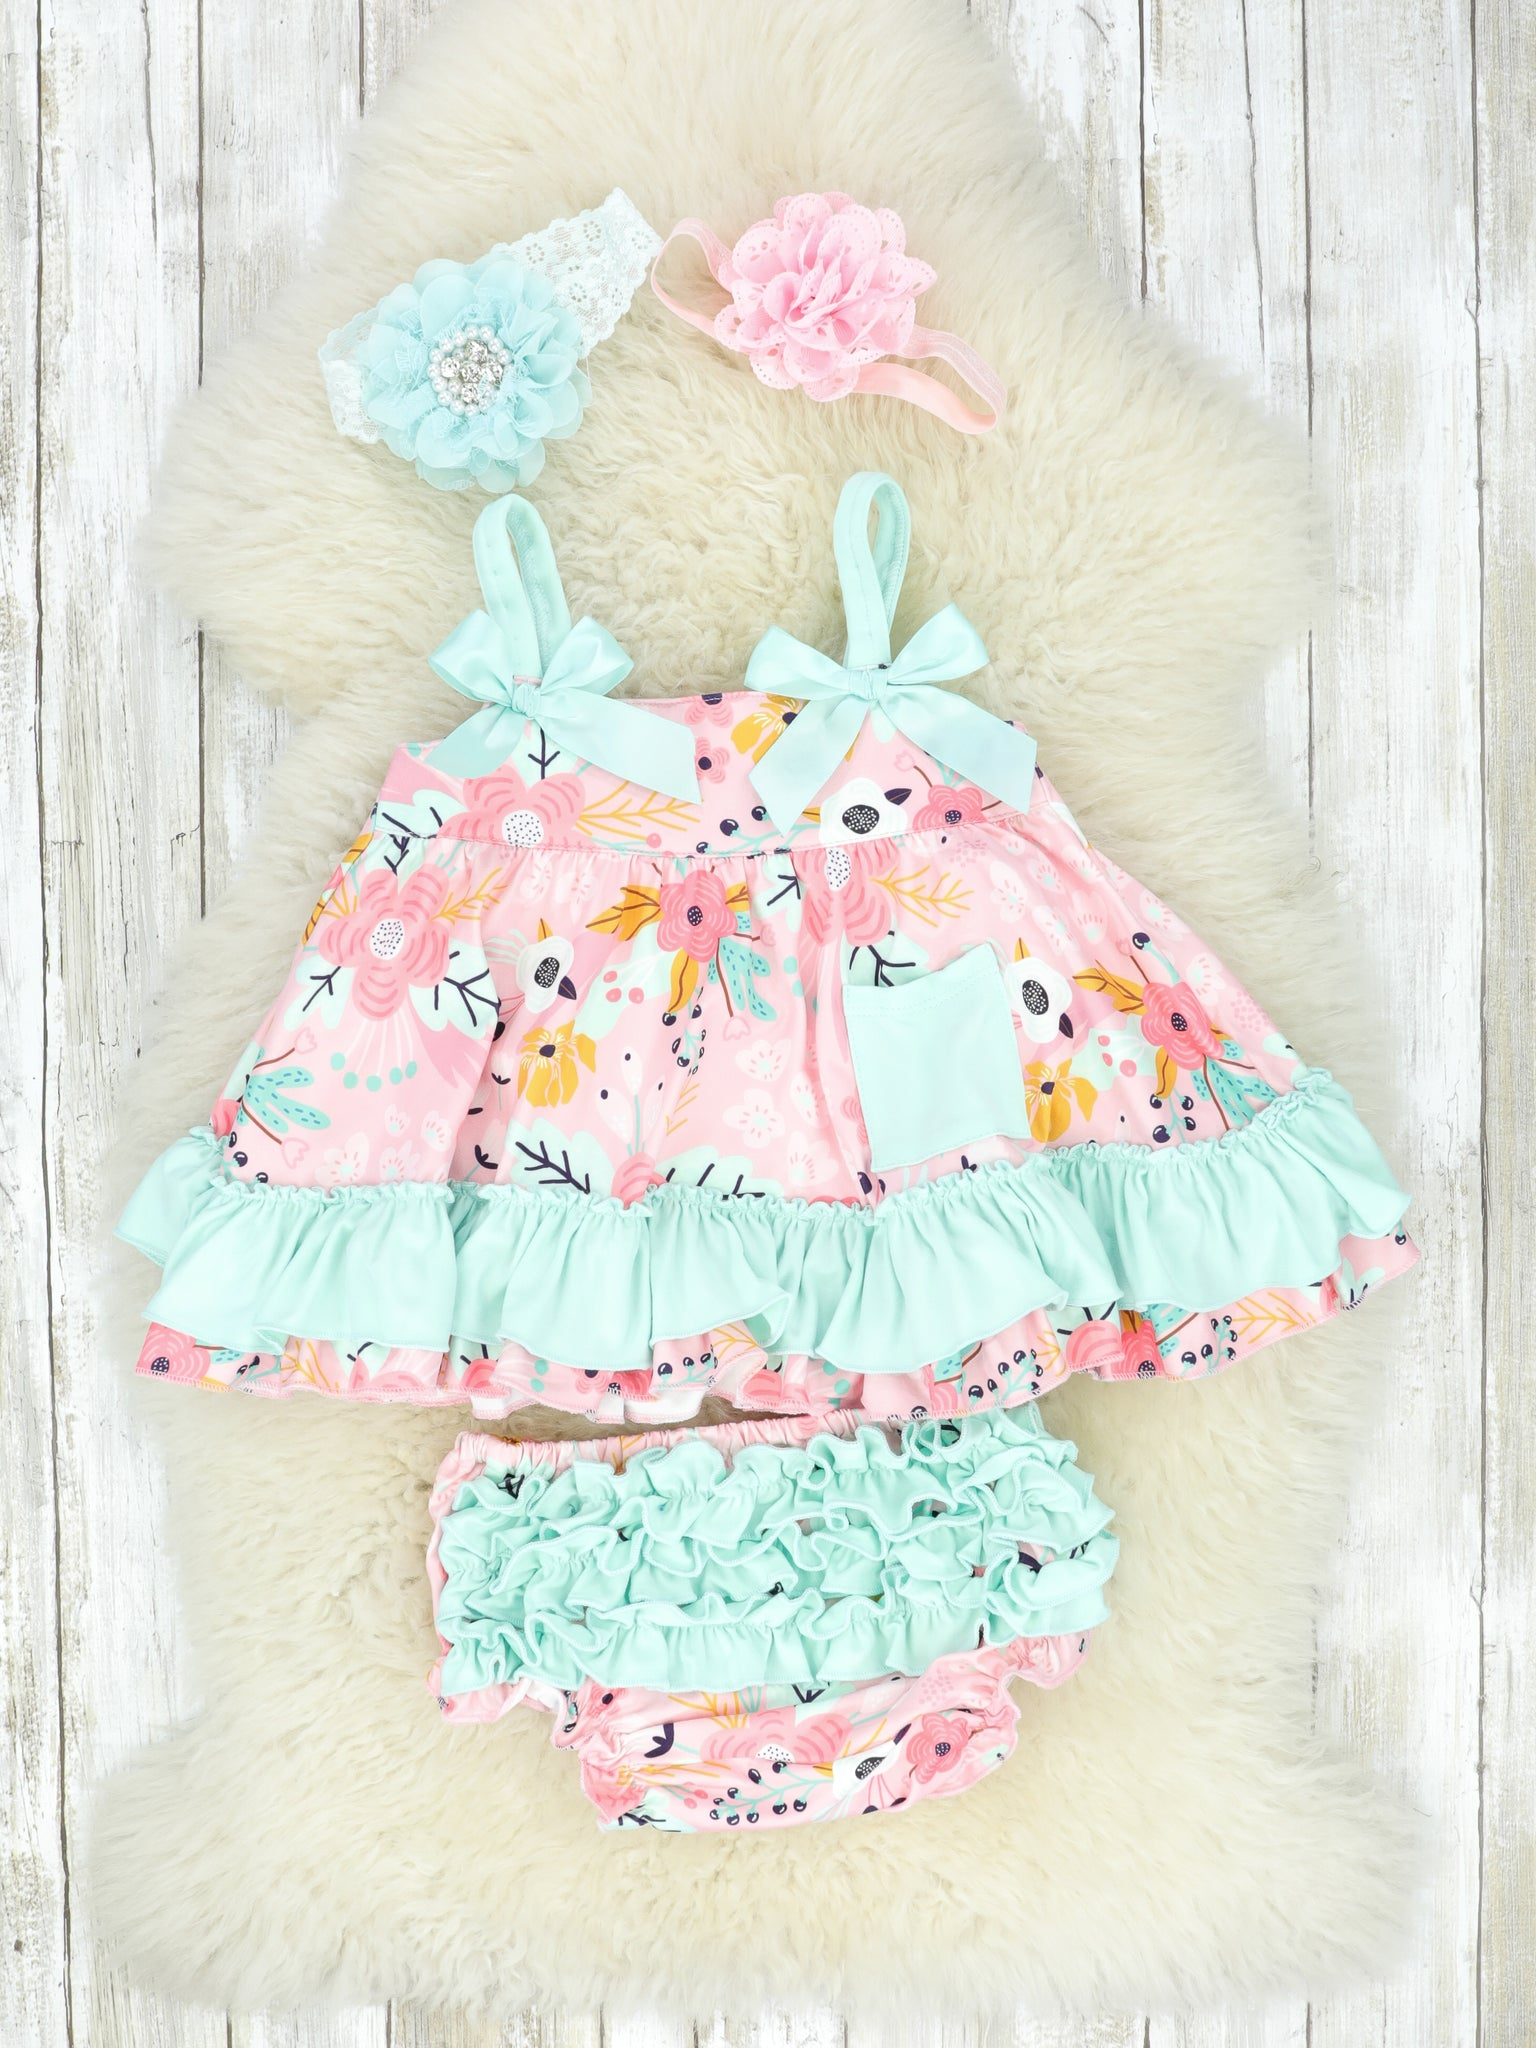 Pink & Teal Spring Floral Swing Dress & Ruffle Bloomers Outfit